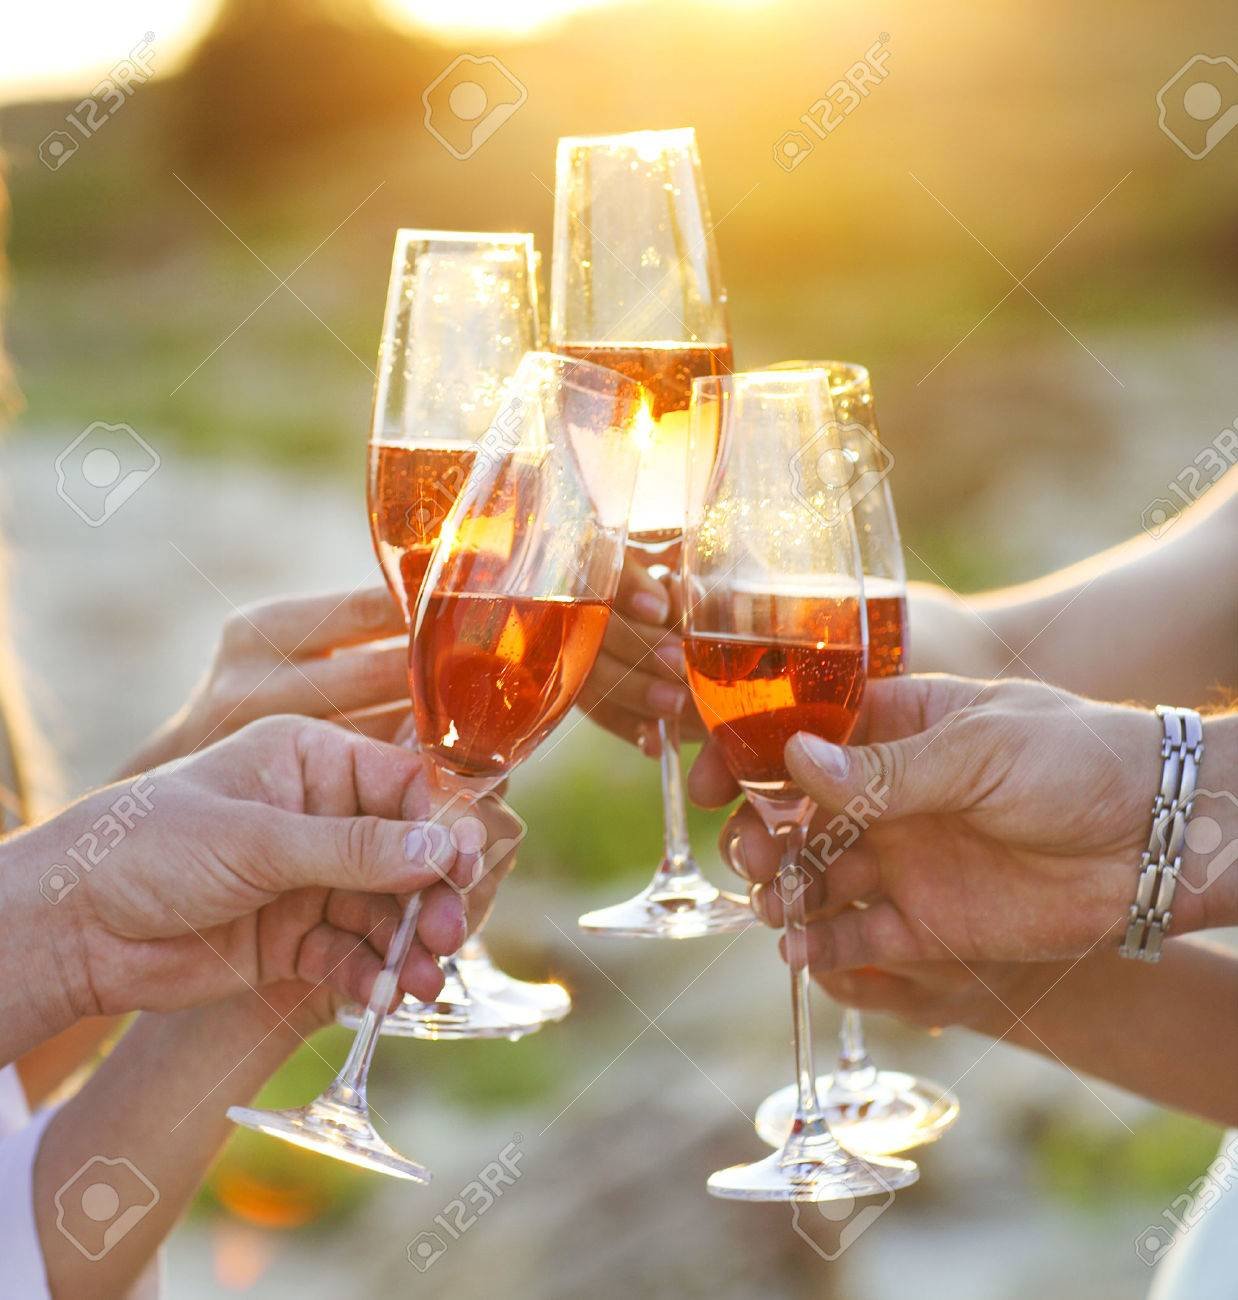 Group of friends toasting champagne sparkling wine at a relax party celebration gathering - 51168608